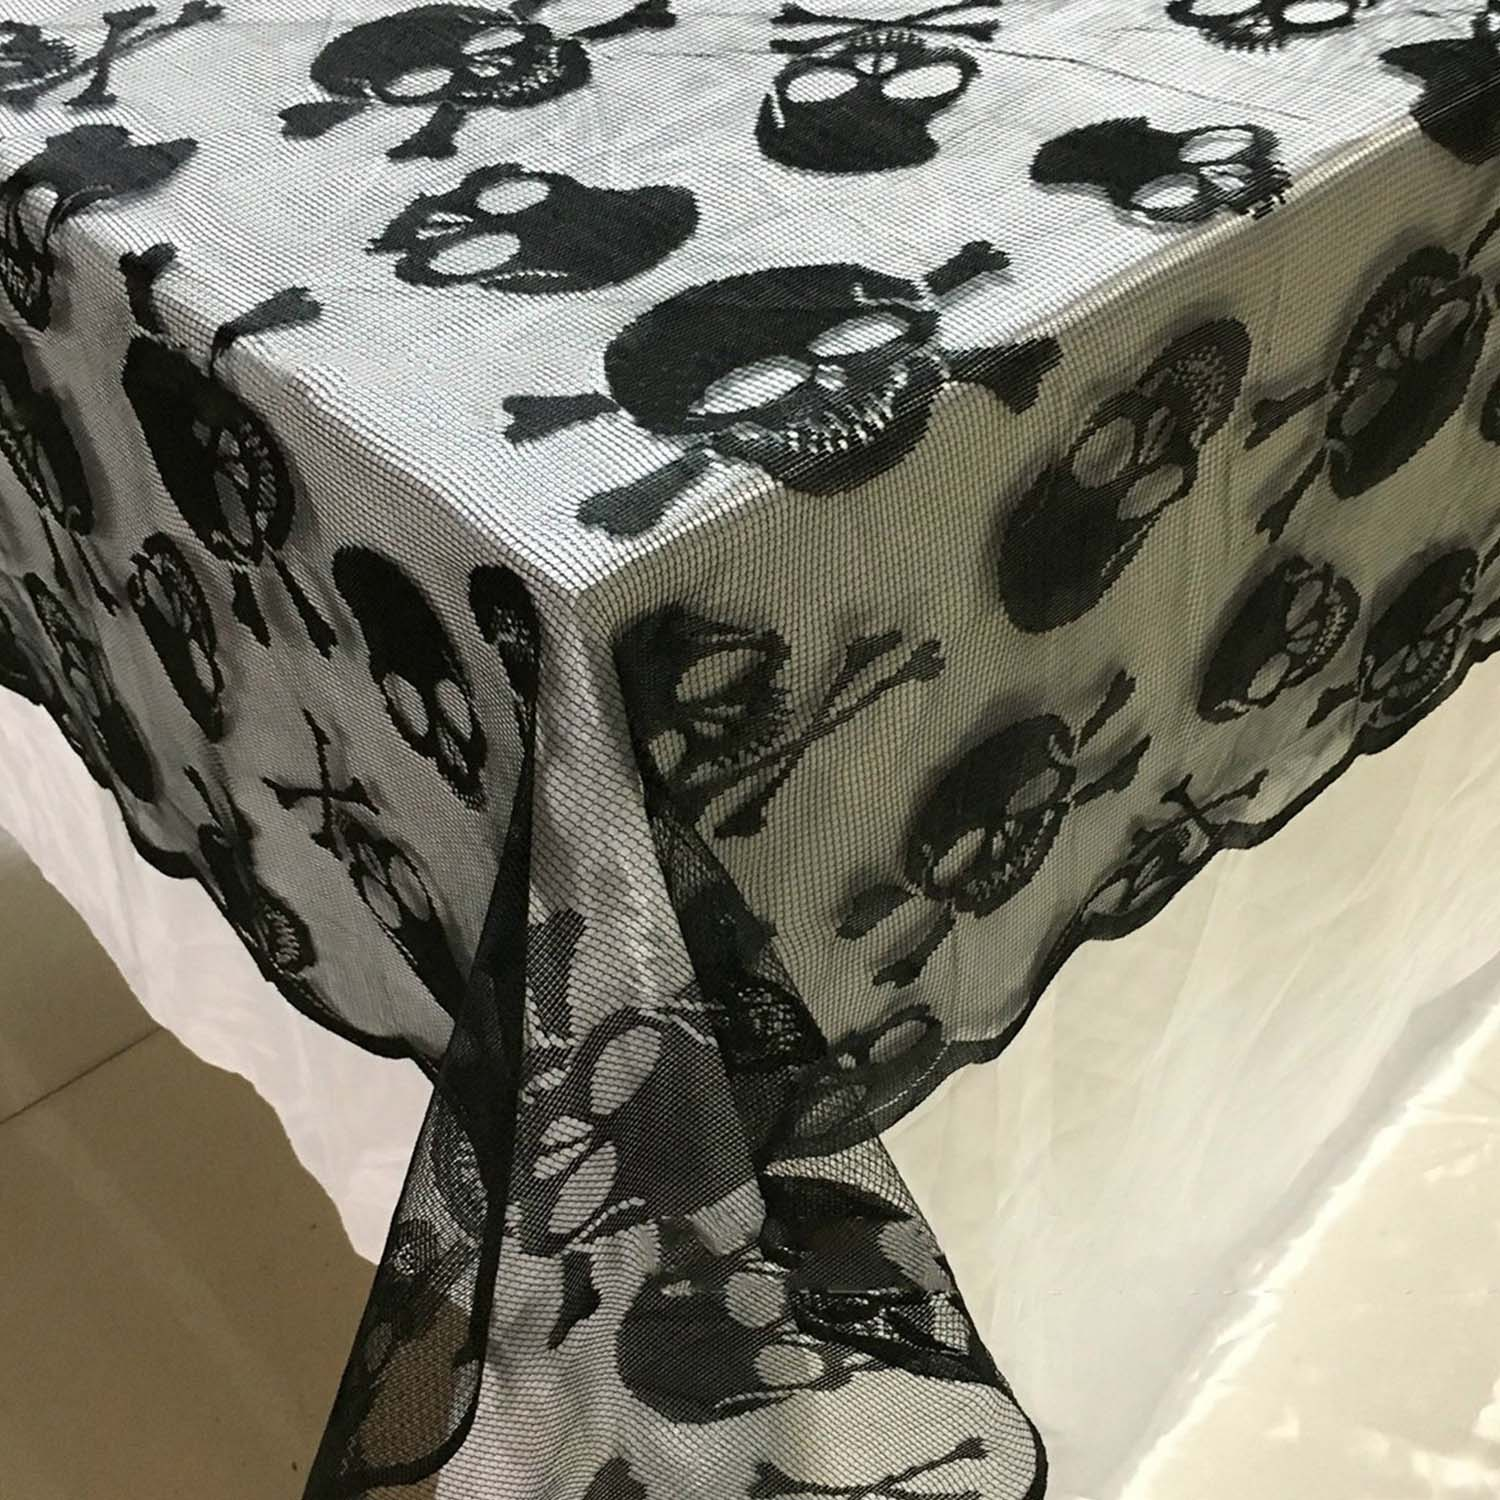 Behogar Halloween Decoration Black Lace Skull Style Table Cover Runner Tablecloth for Dinner Party Scary Movie Nights Decor pug